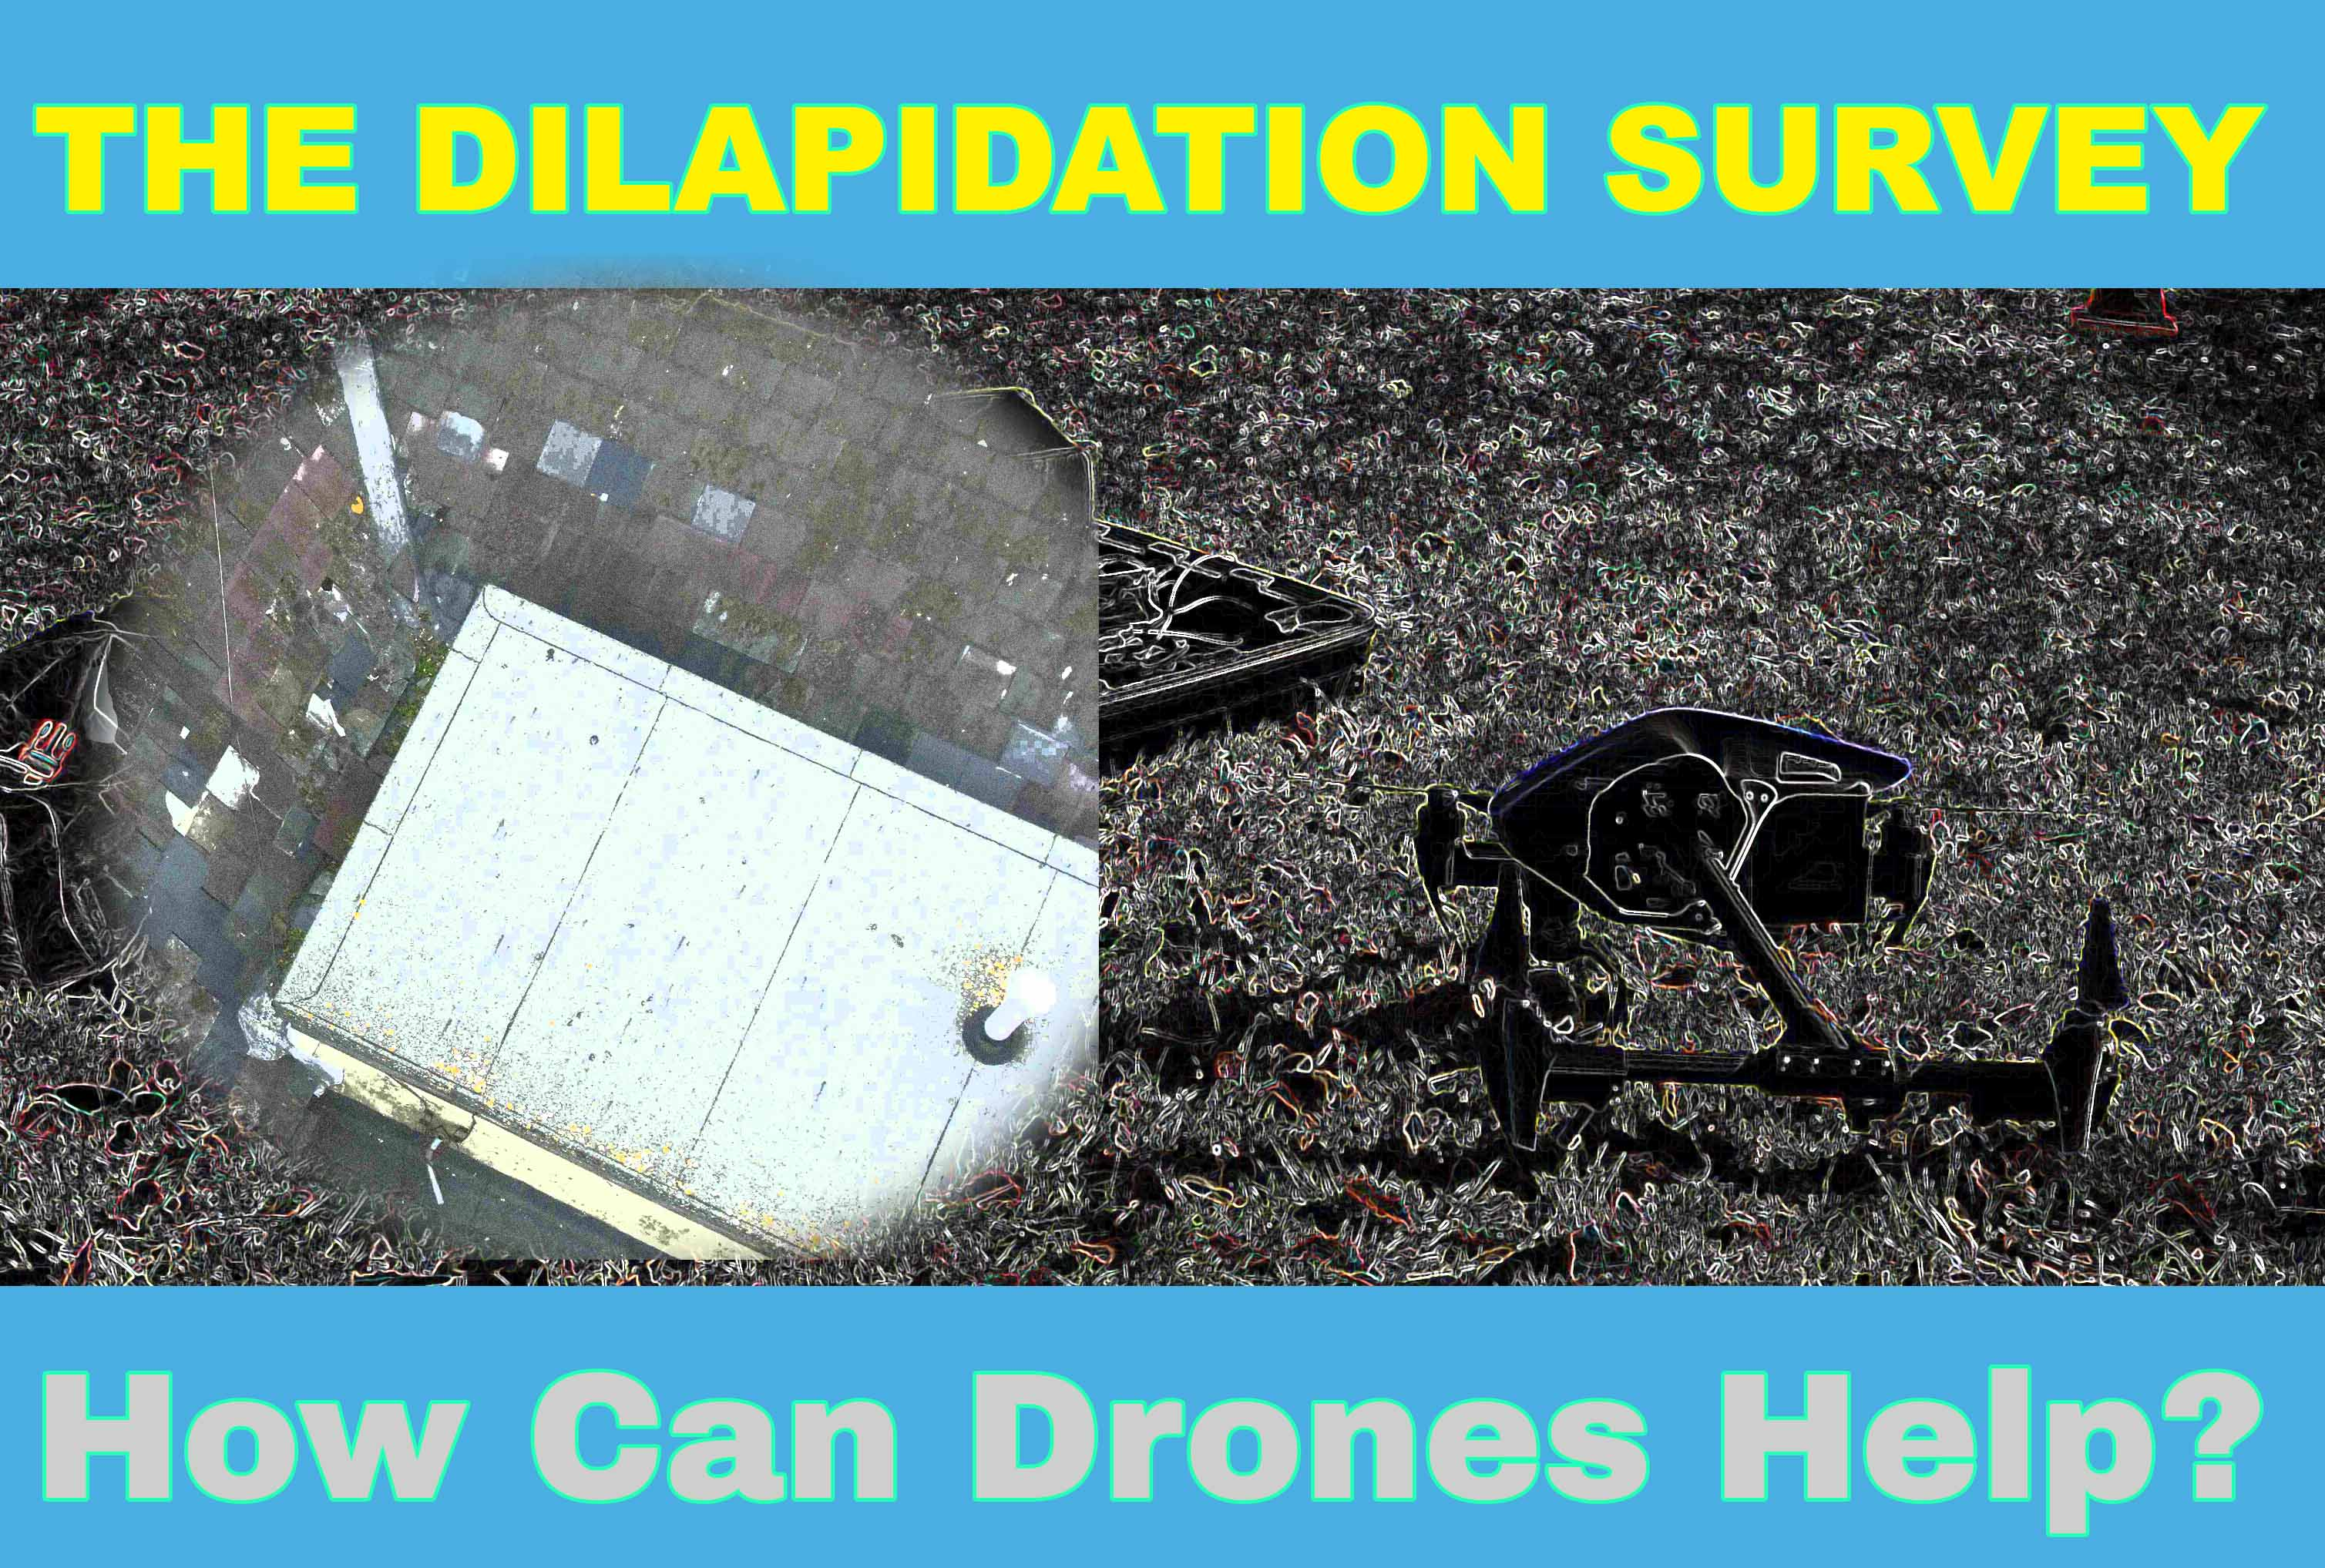 What Does a Dilapidation Survey Involve? How Can Drones Help?